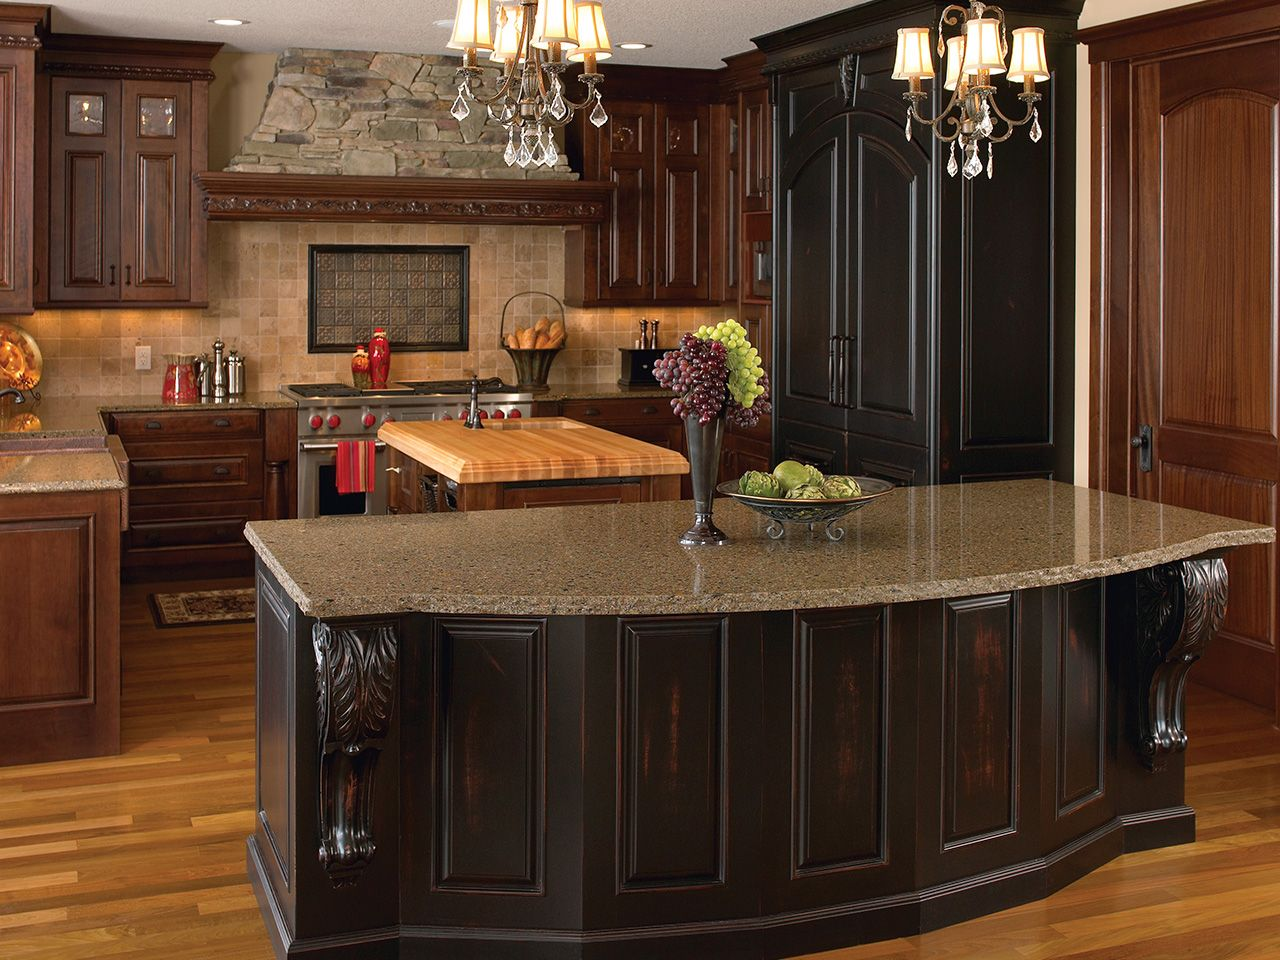 Captivating How To Choose The Best Kitchen Countertops For Your Cincinnati Home Remodel.